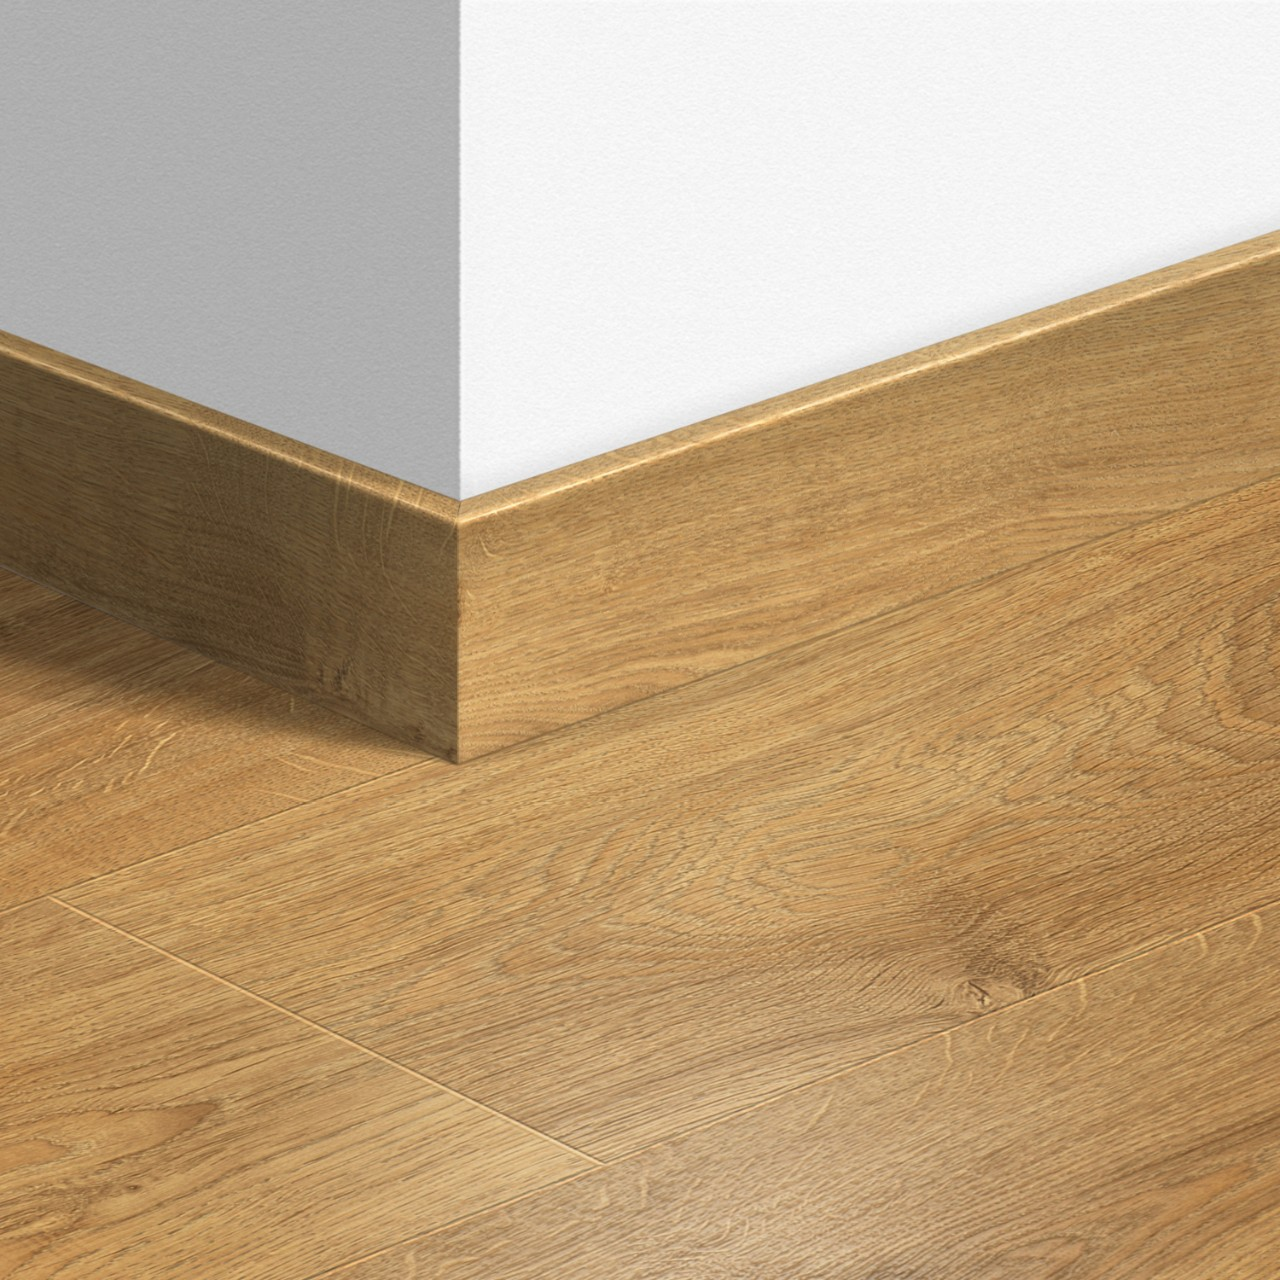 QSPSKR Laminate Accessories Cambridge oak natural QSPSKR01662